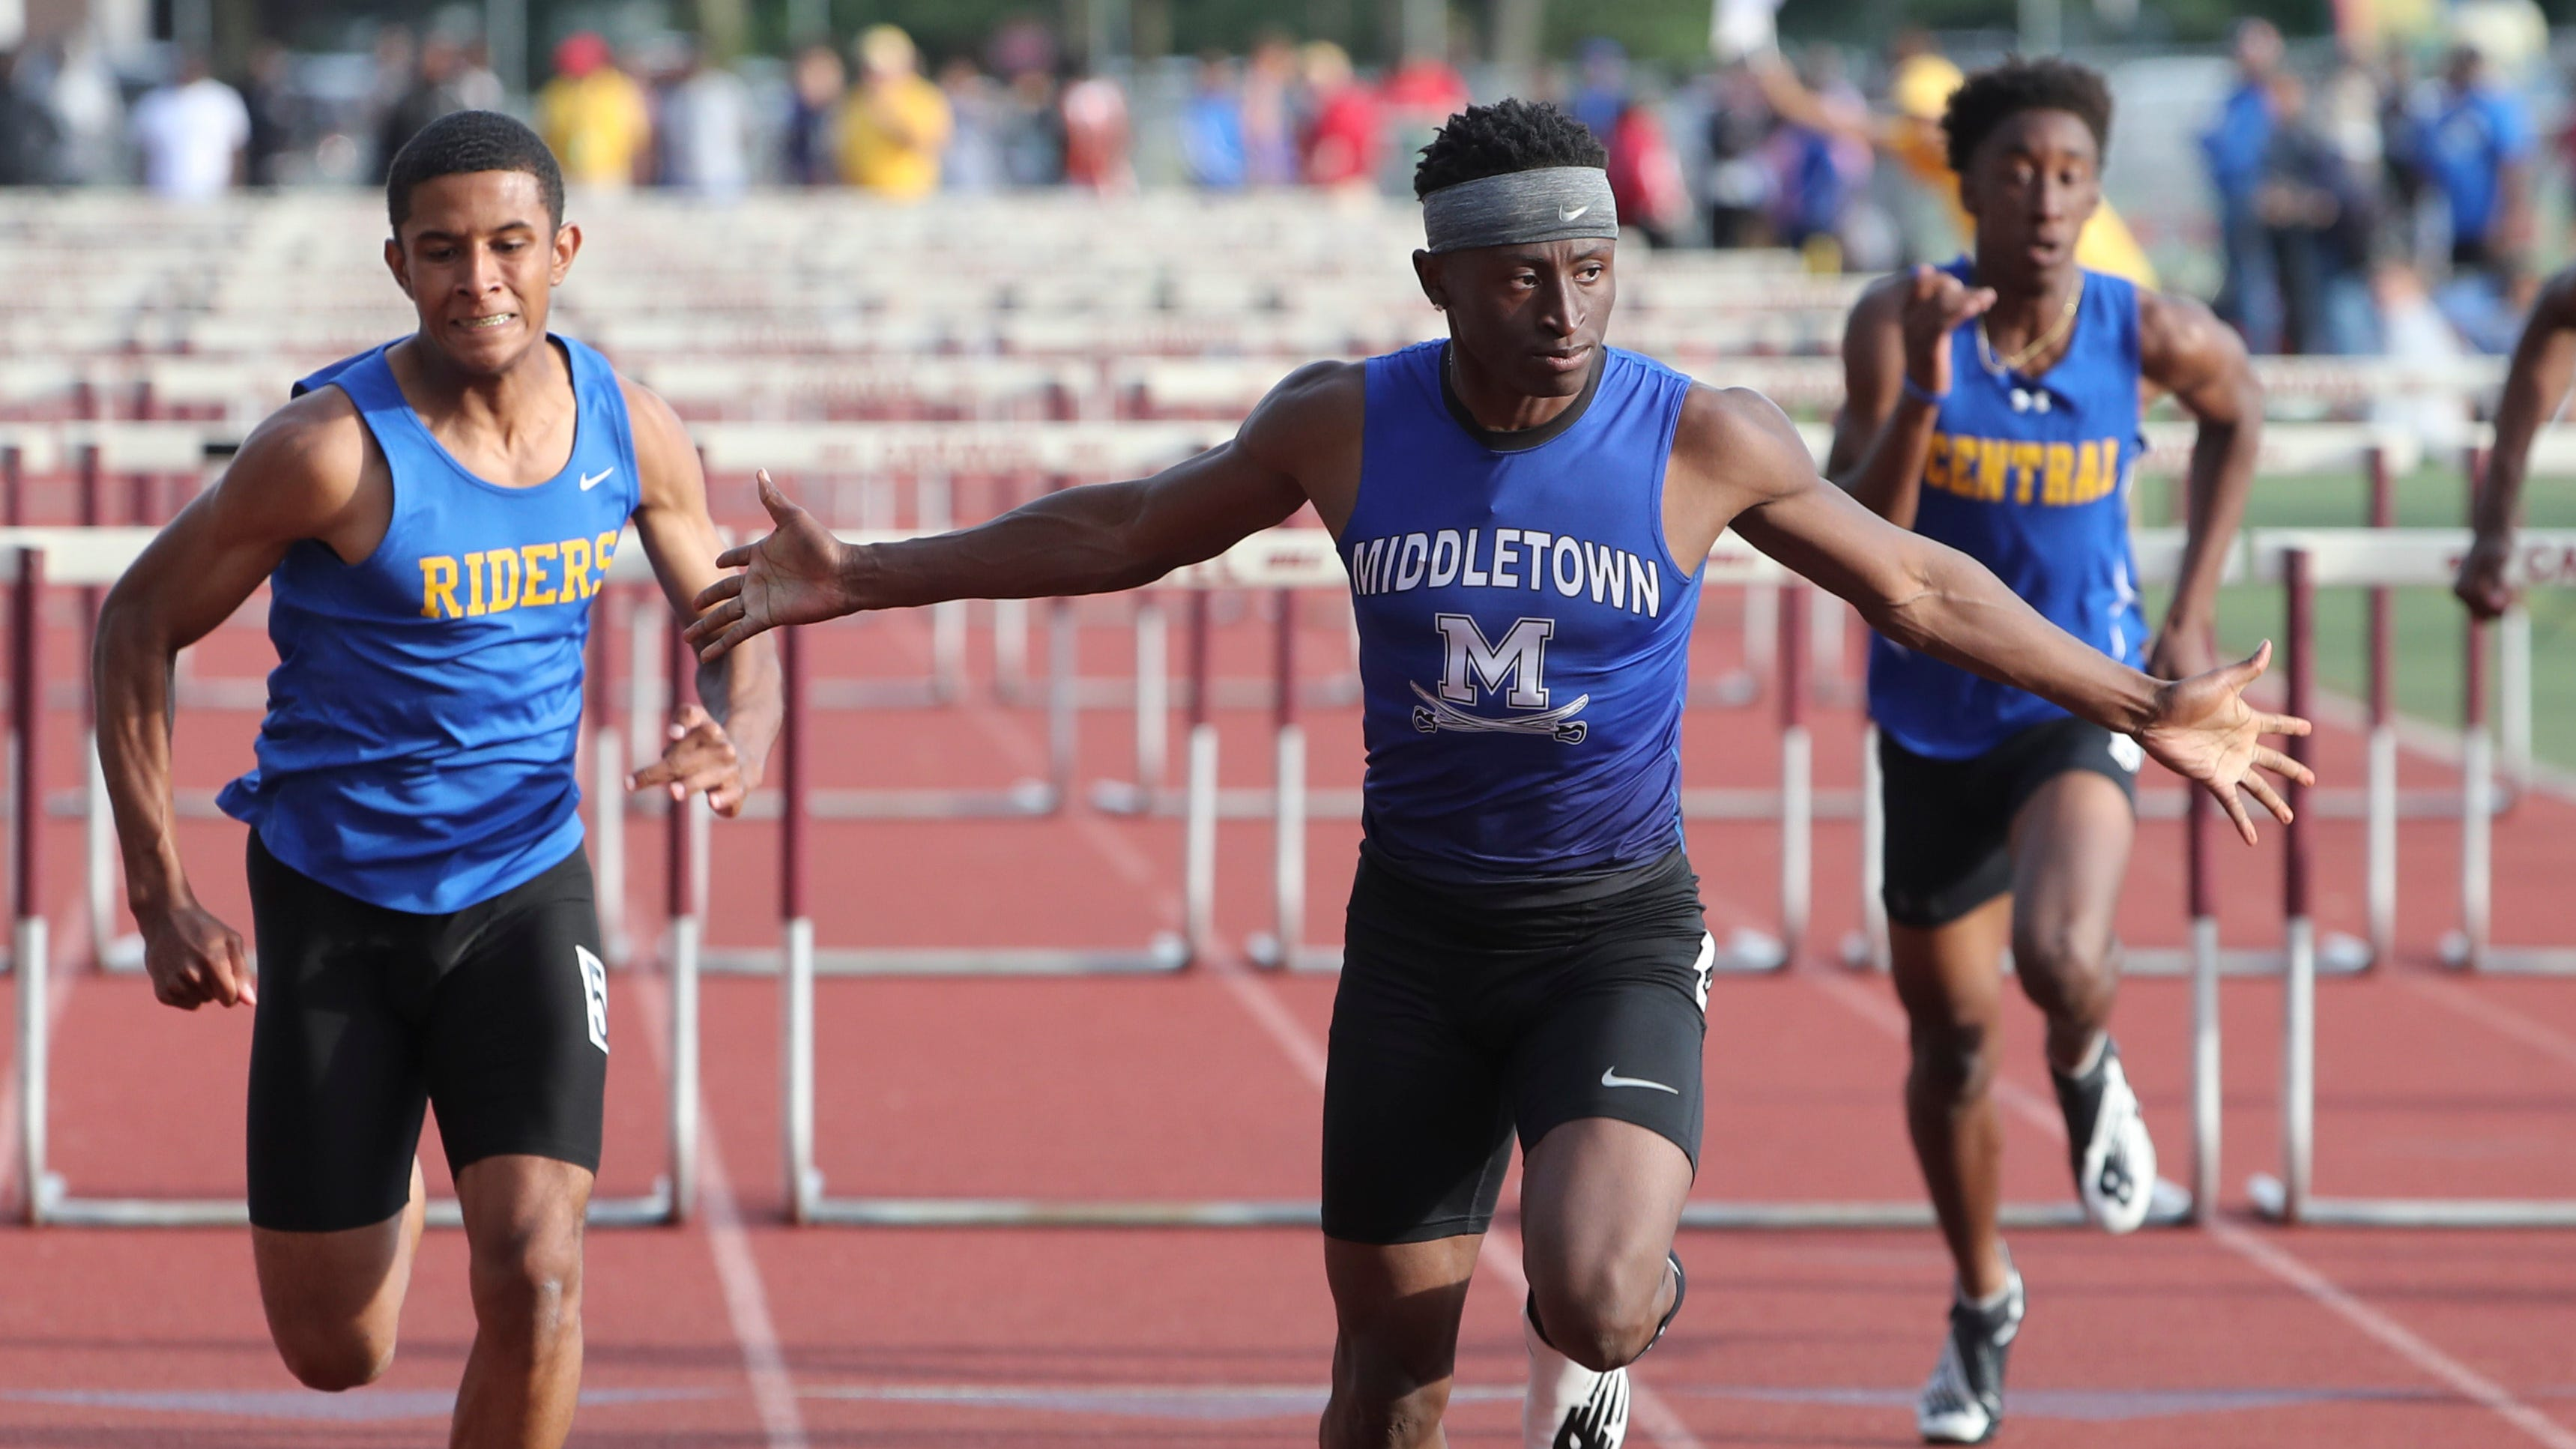 Middletown's Brahmir Vick sets a state record in the 110 meter hurdles with a time of 14.00 seconds during the Rod Lambert Meet of Champions at Caravel Academy Wednesday. Caesar Rodney's Leon Jett (left) was second.